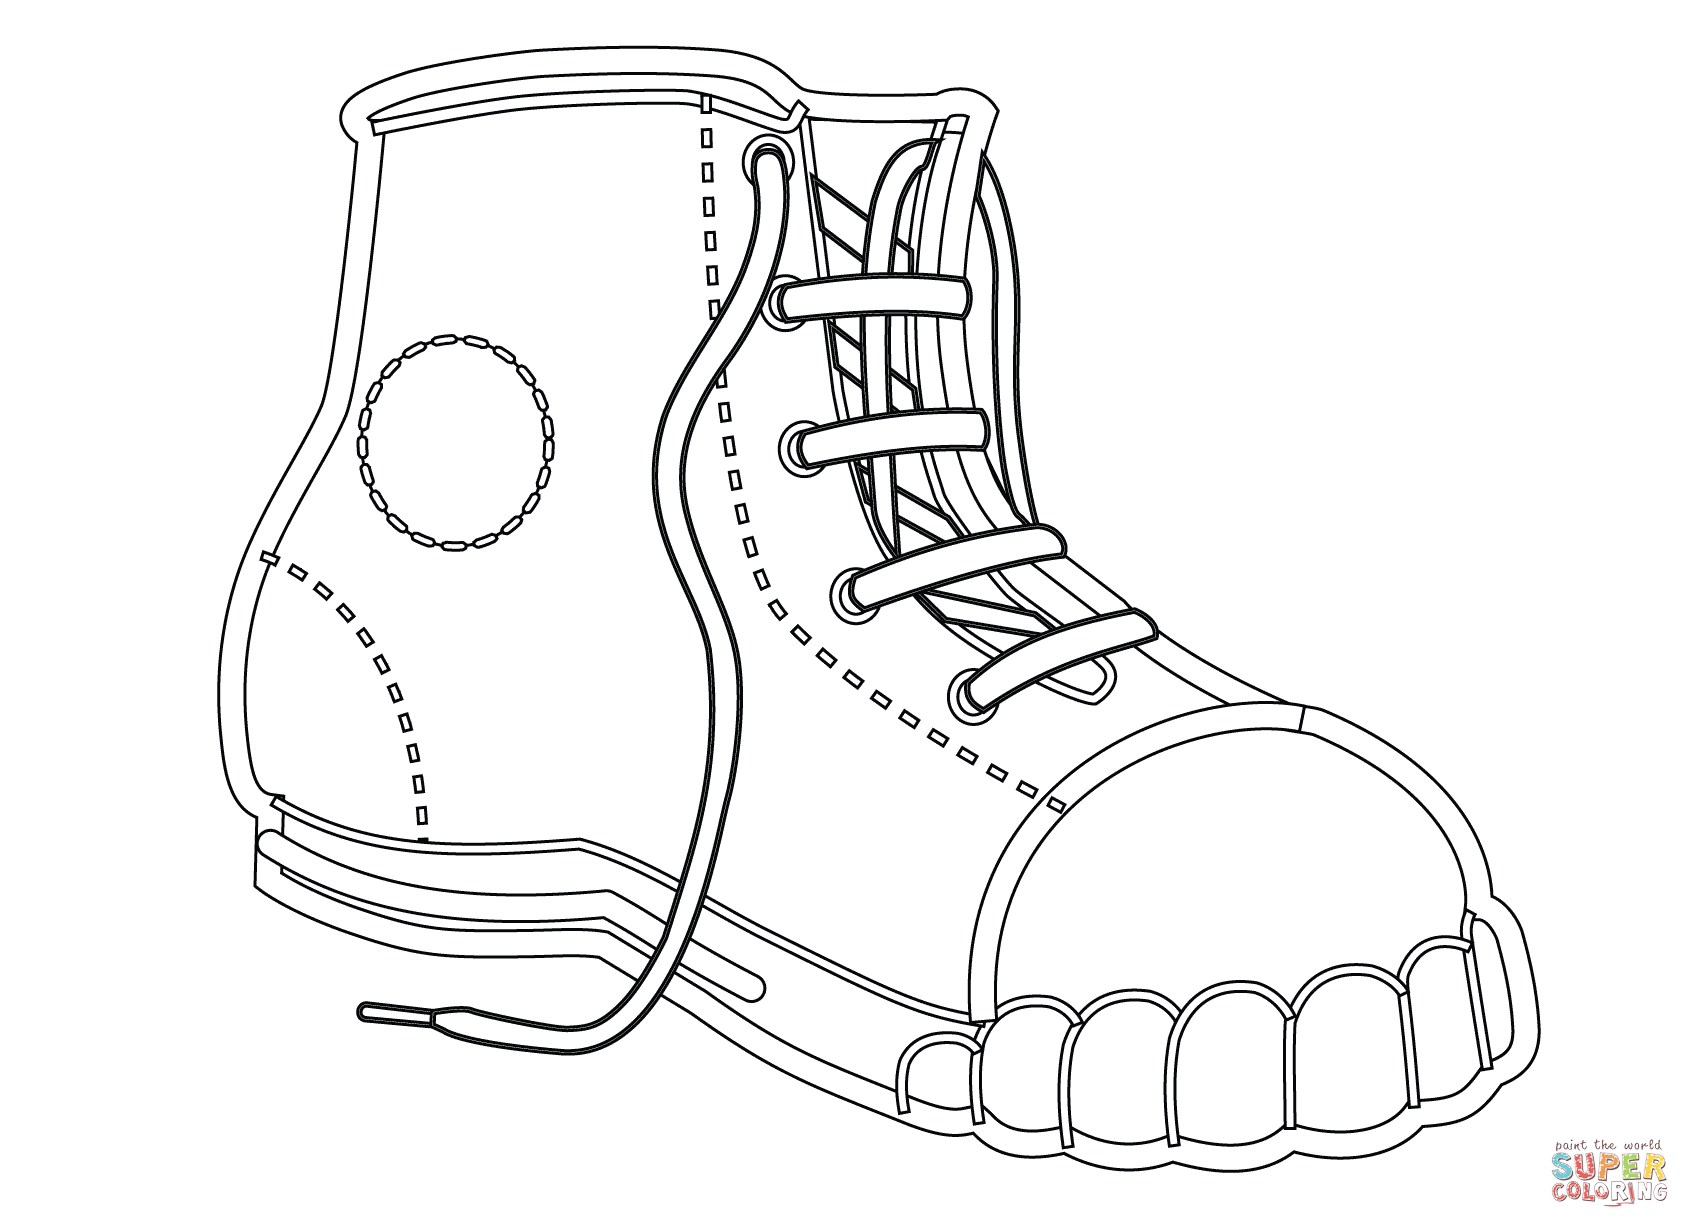 childrens coloring pages shoes - photo#6